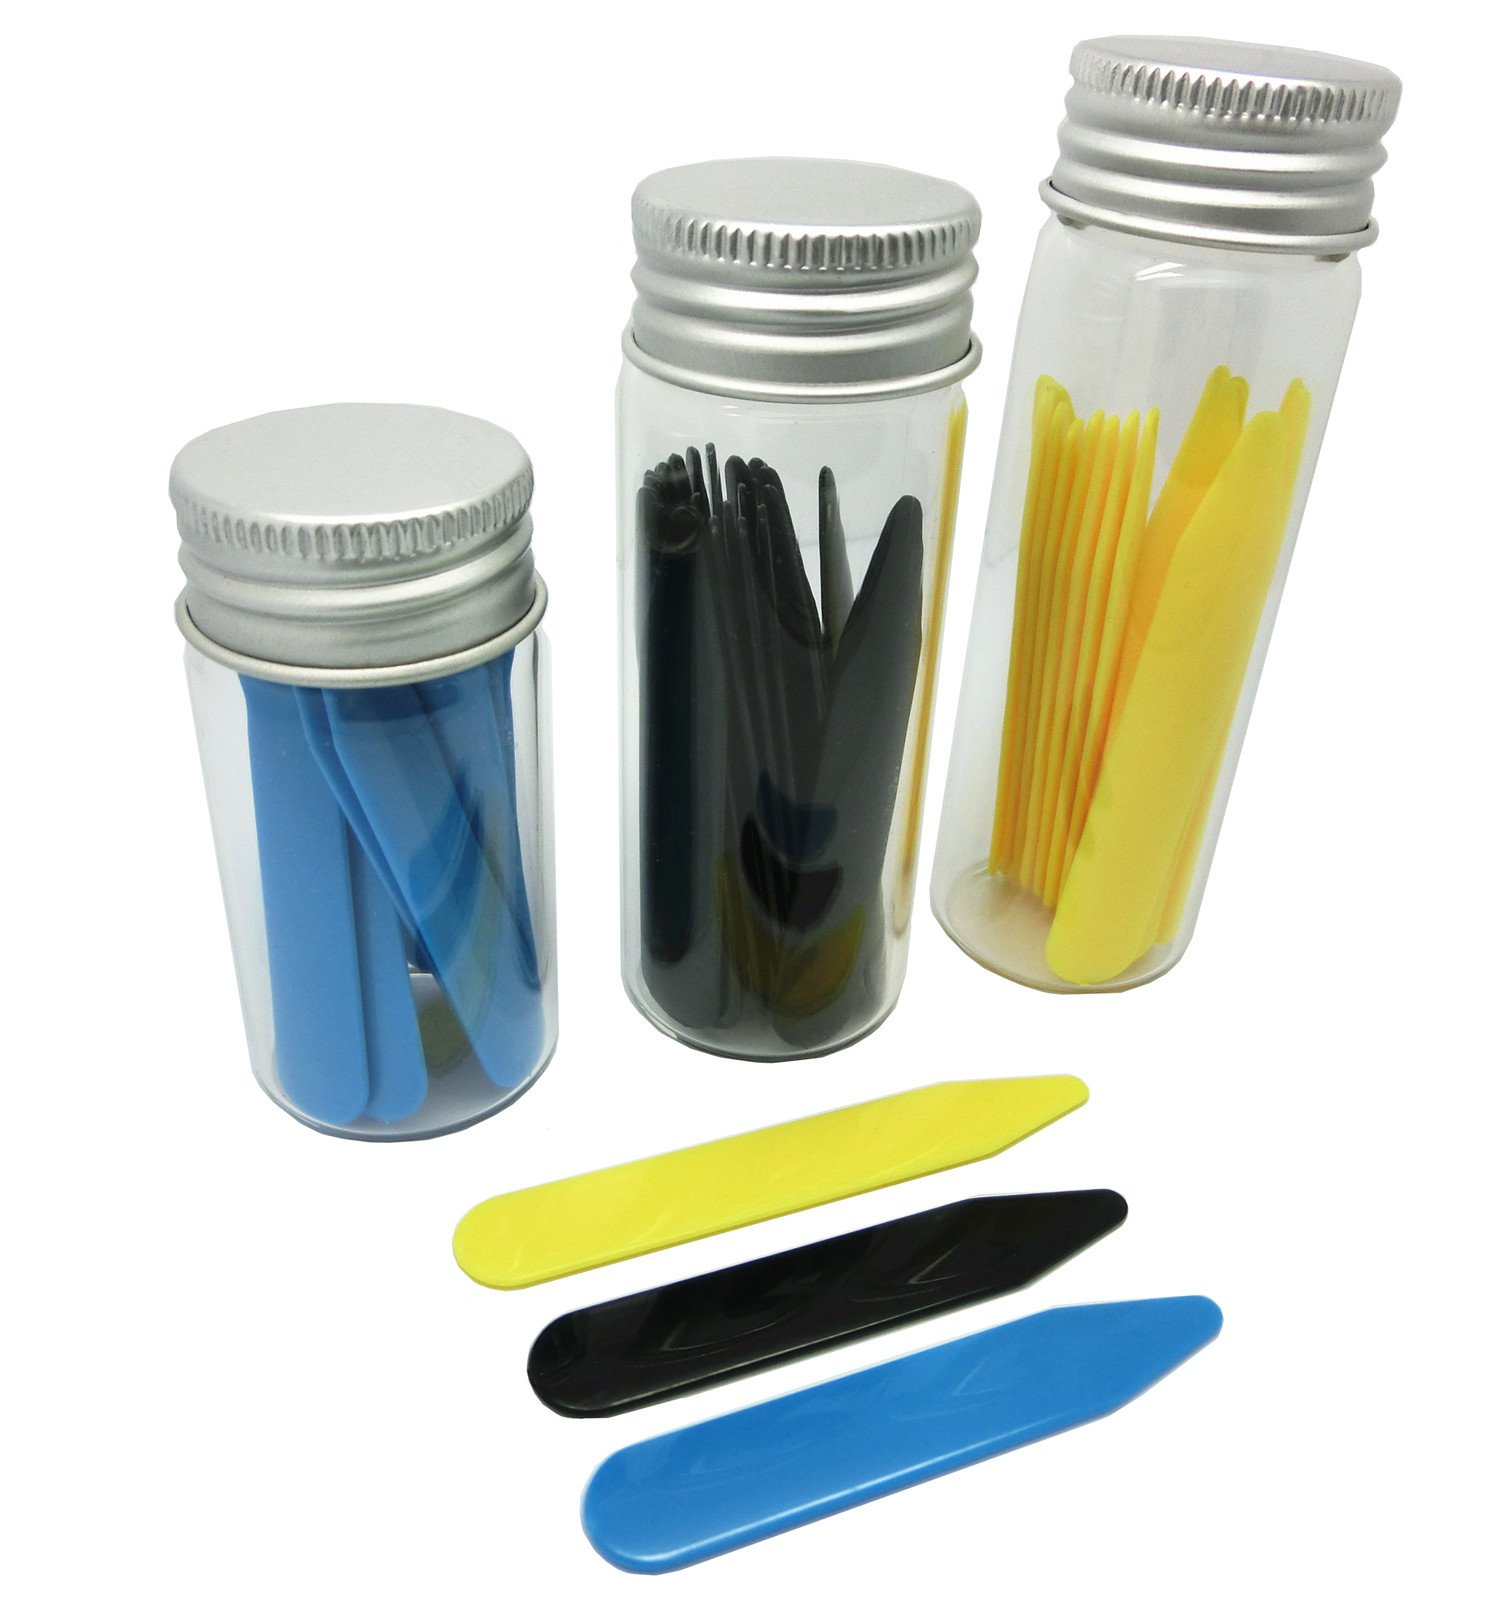 Shang Zun 48 Pcs 3 Colors Plastic Collar Stays in 3 Glass Bottles, 2''/2.2''/2.5''